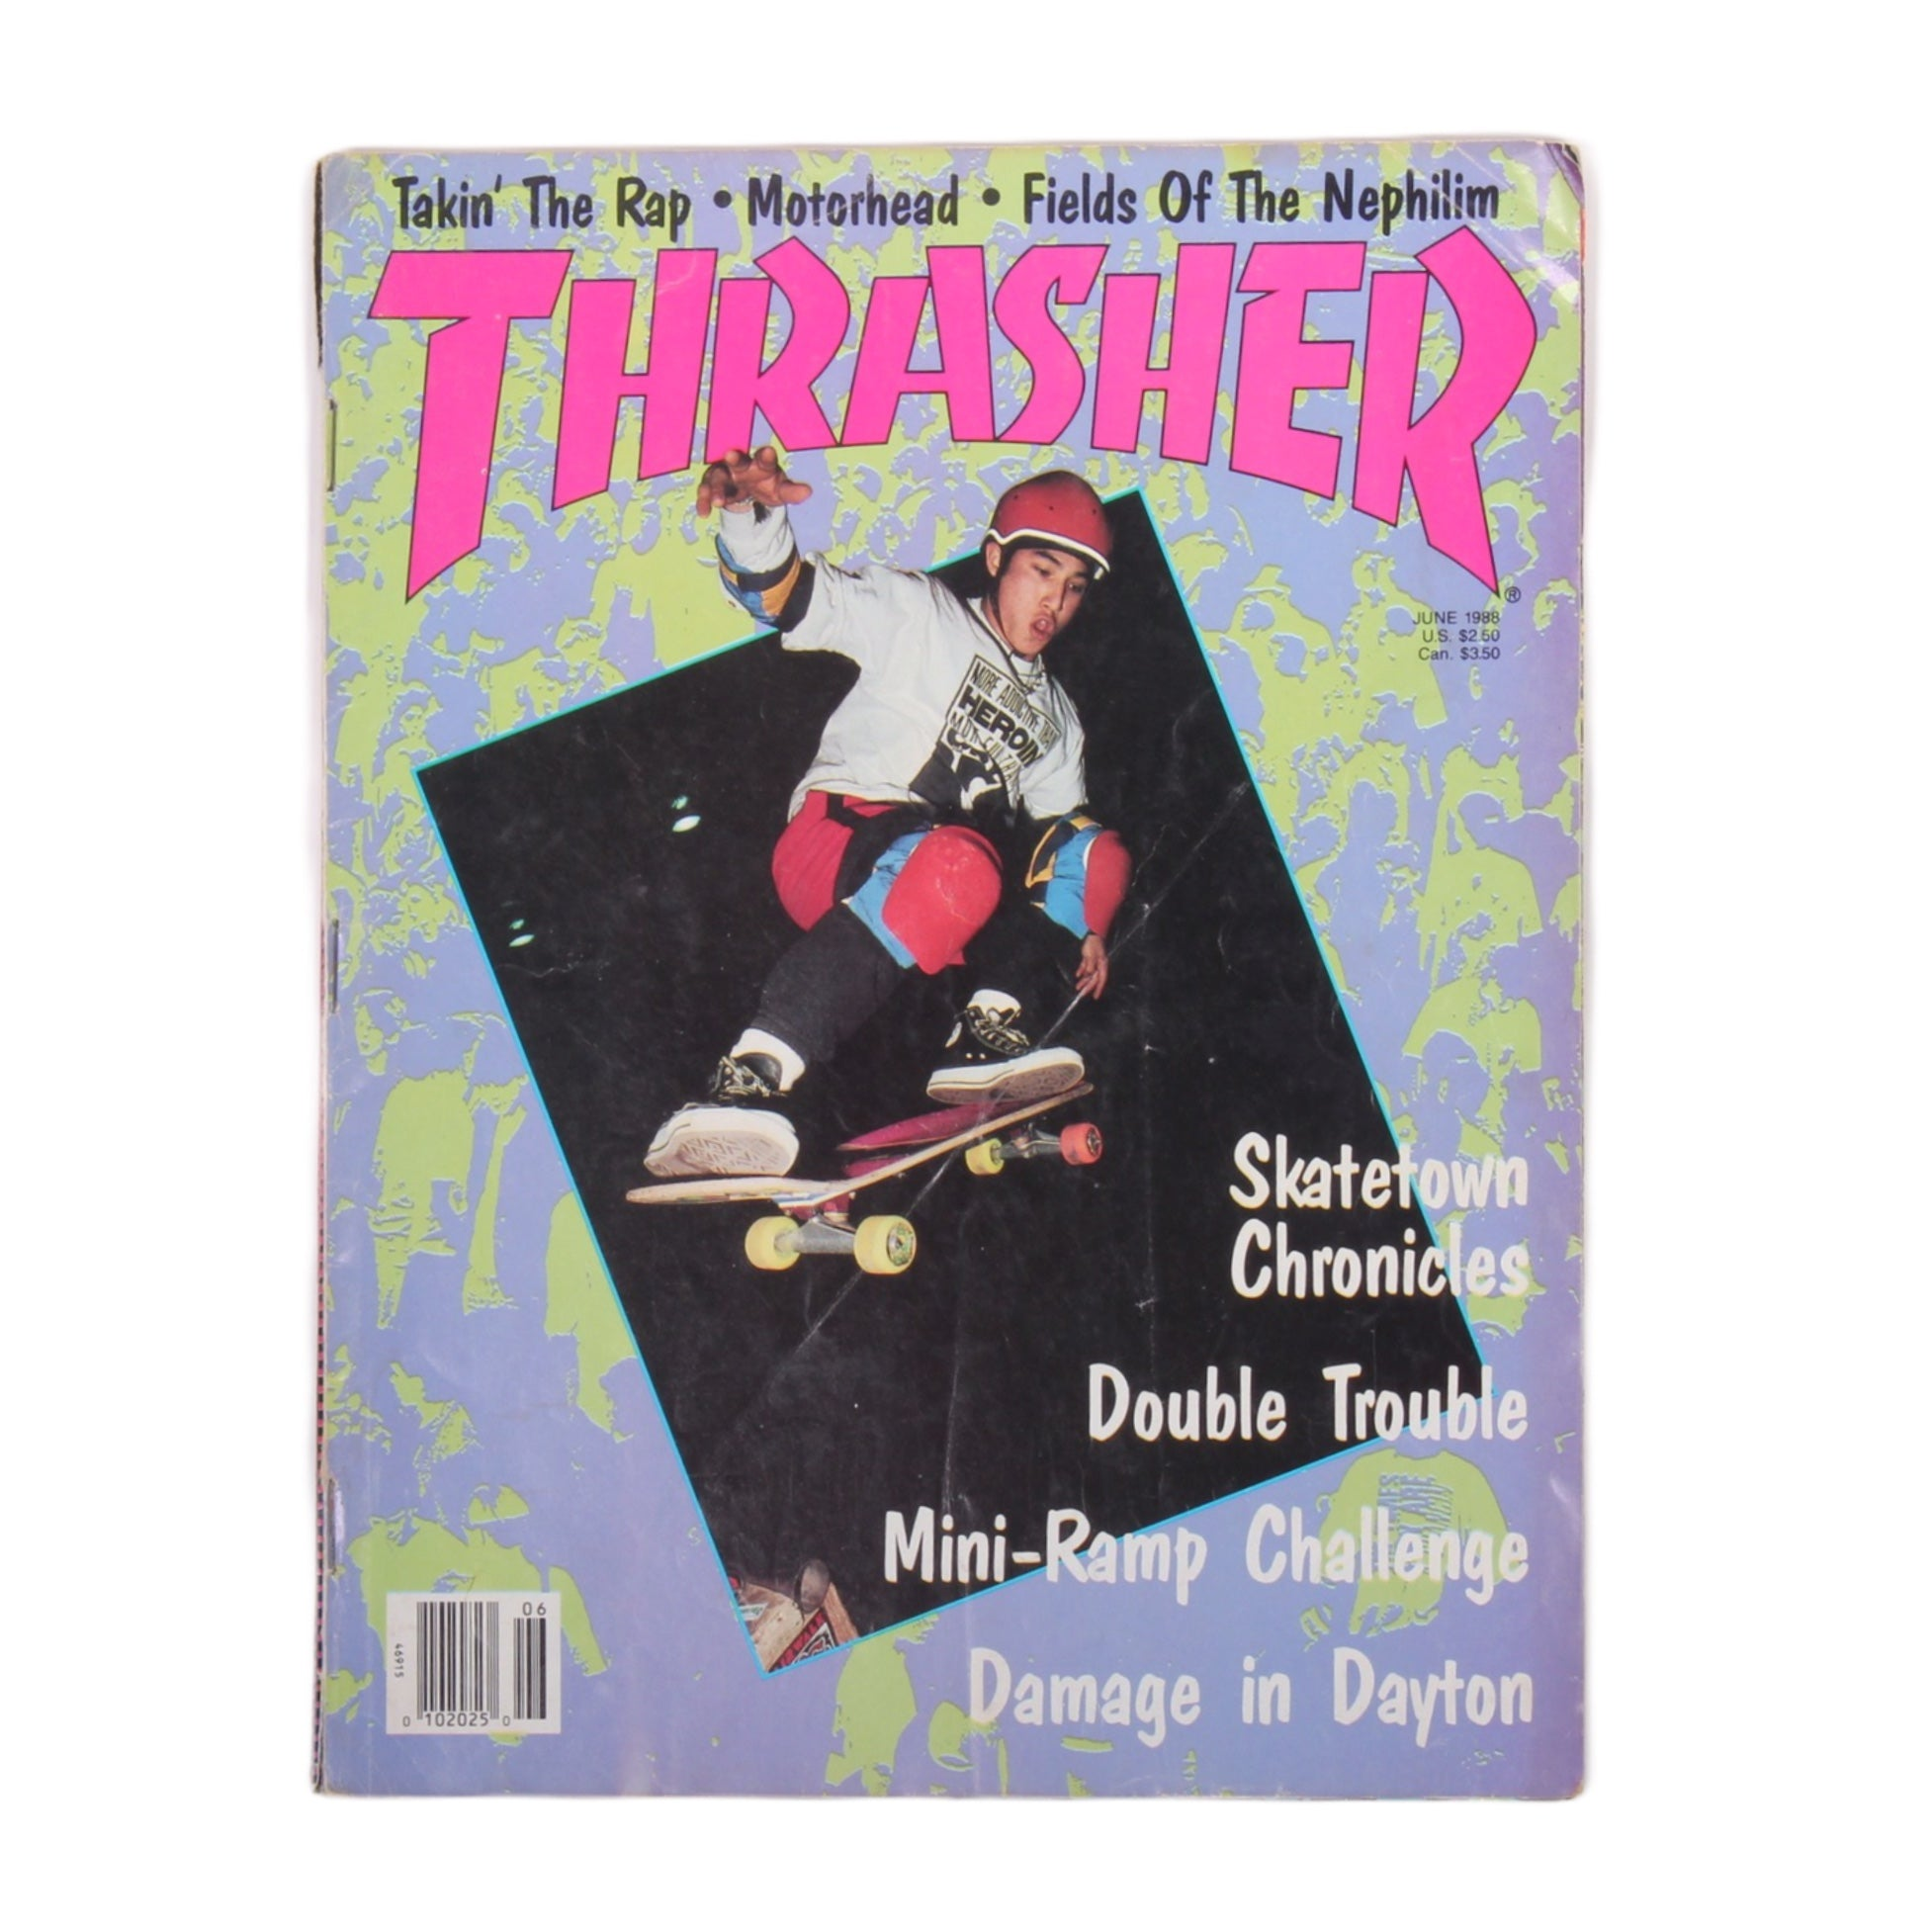 Overripe Thrasher Magazine June 1988